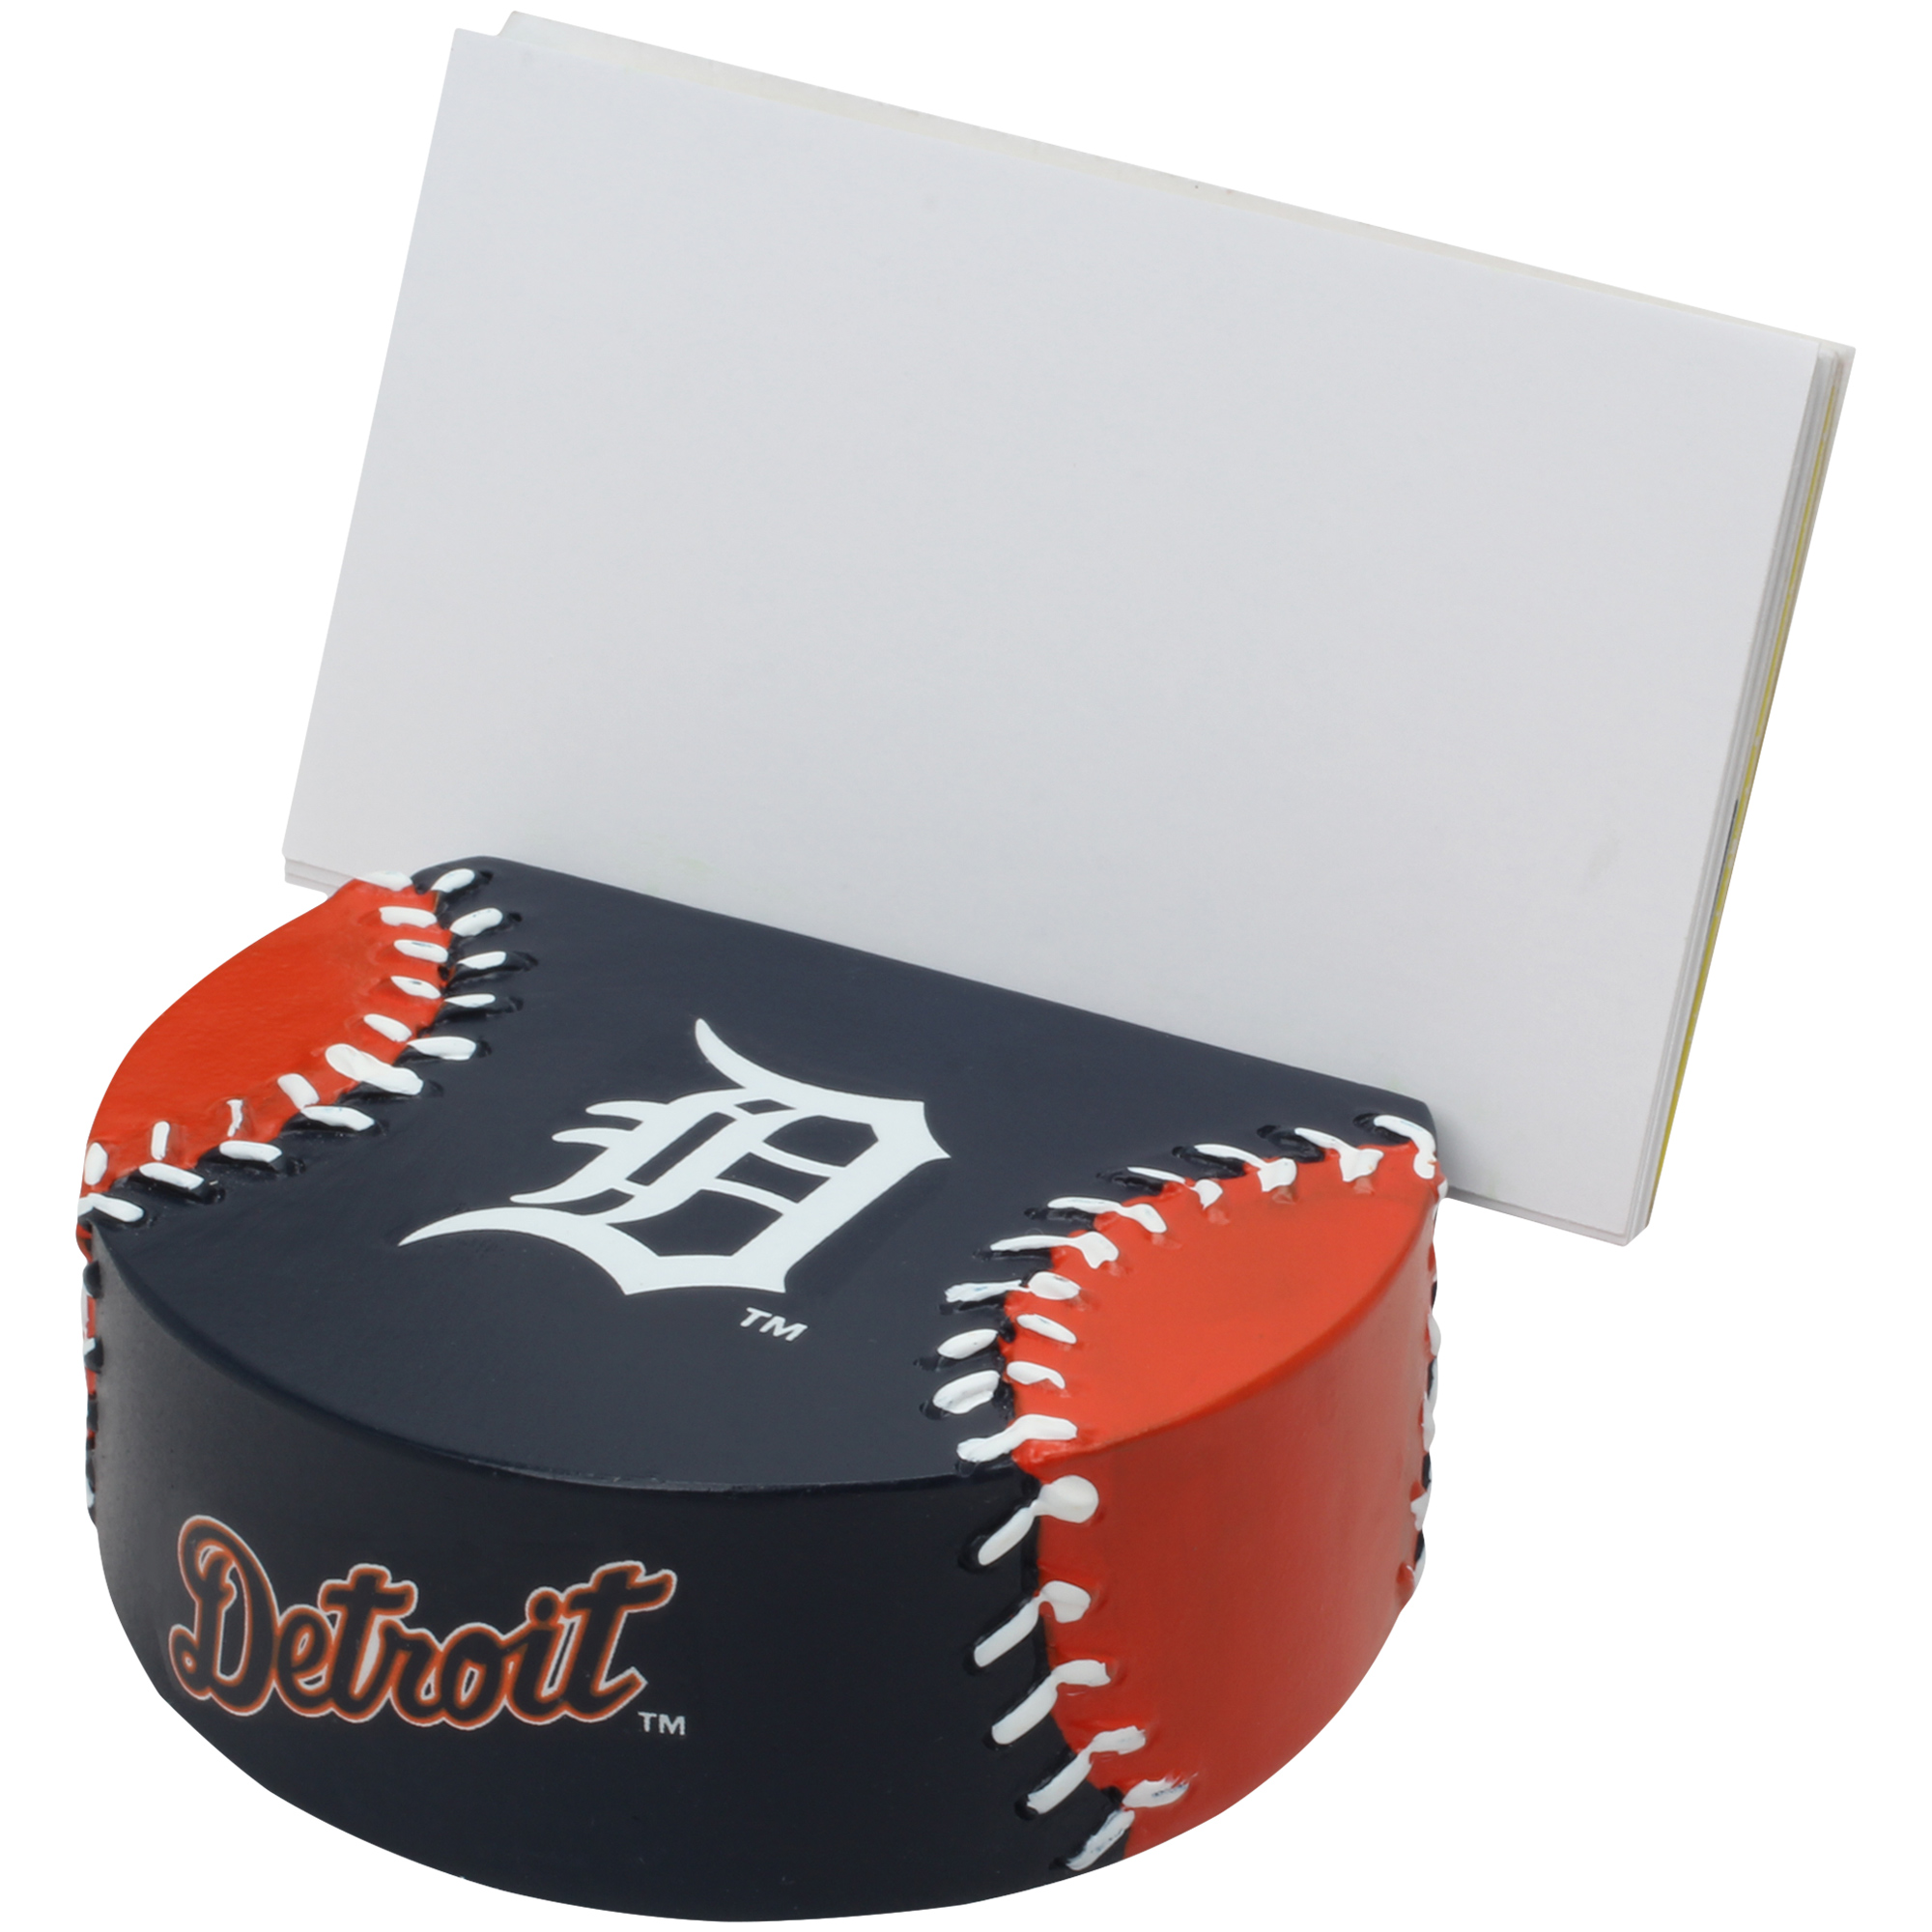 Detroit Tigers Card Holder - No Size